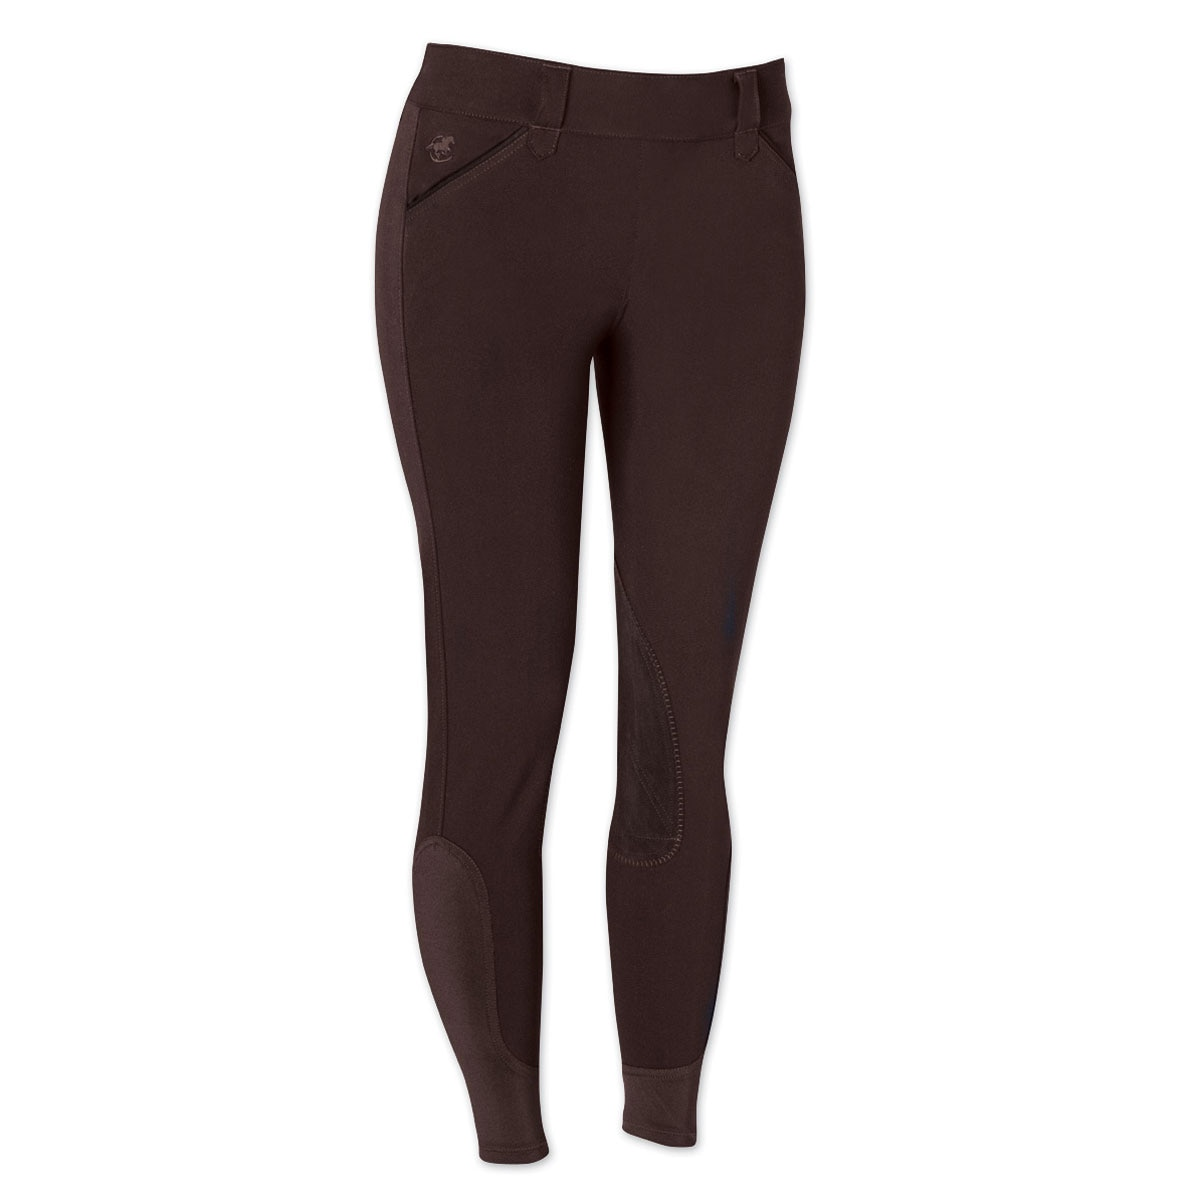 Piper Breeches by SmartPak - Classic Side Zip Knee Patch- Sale!